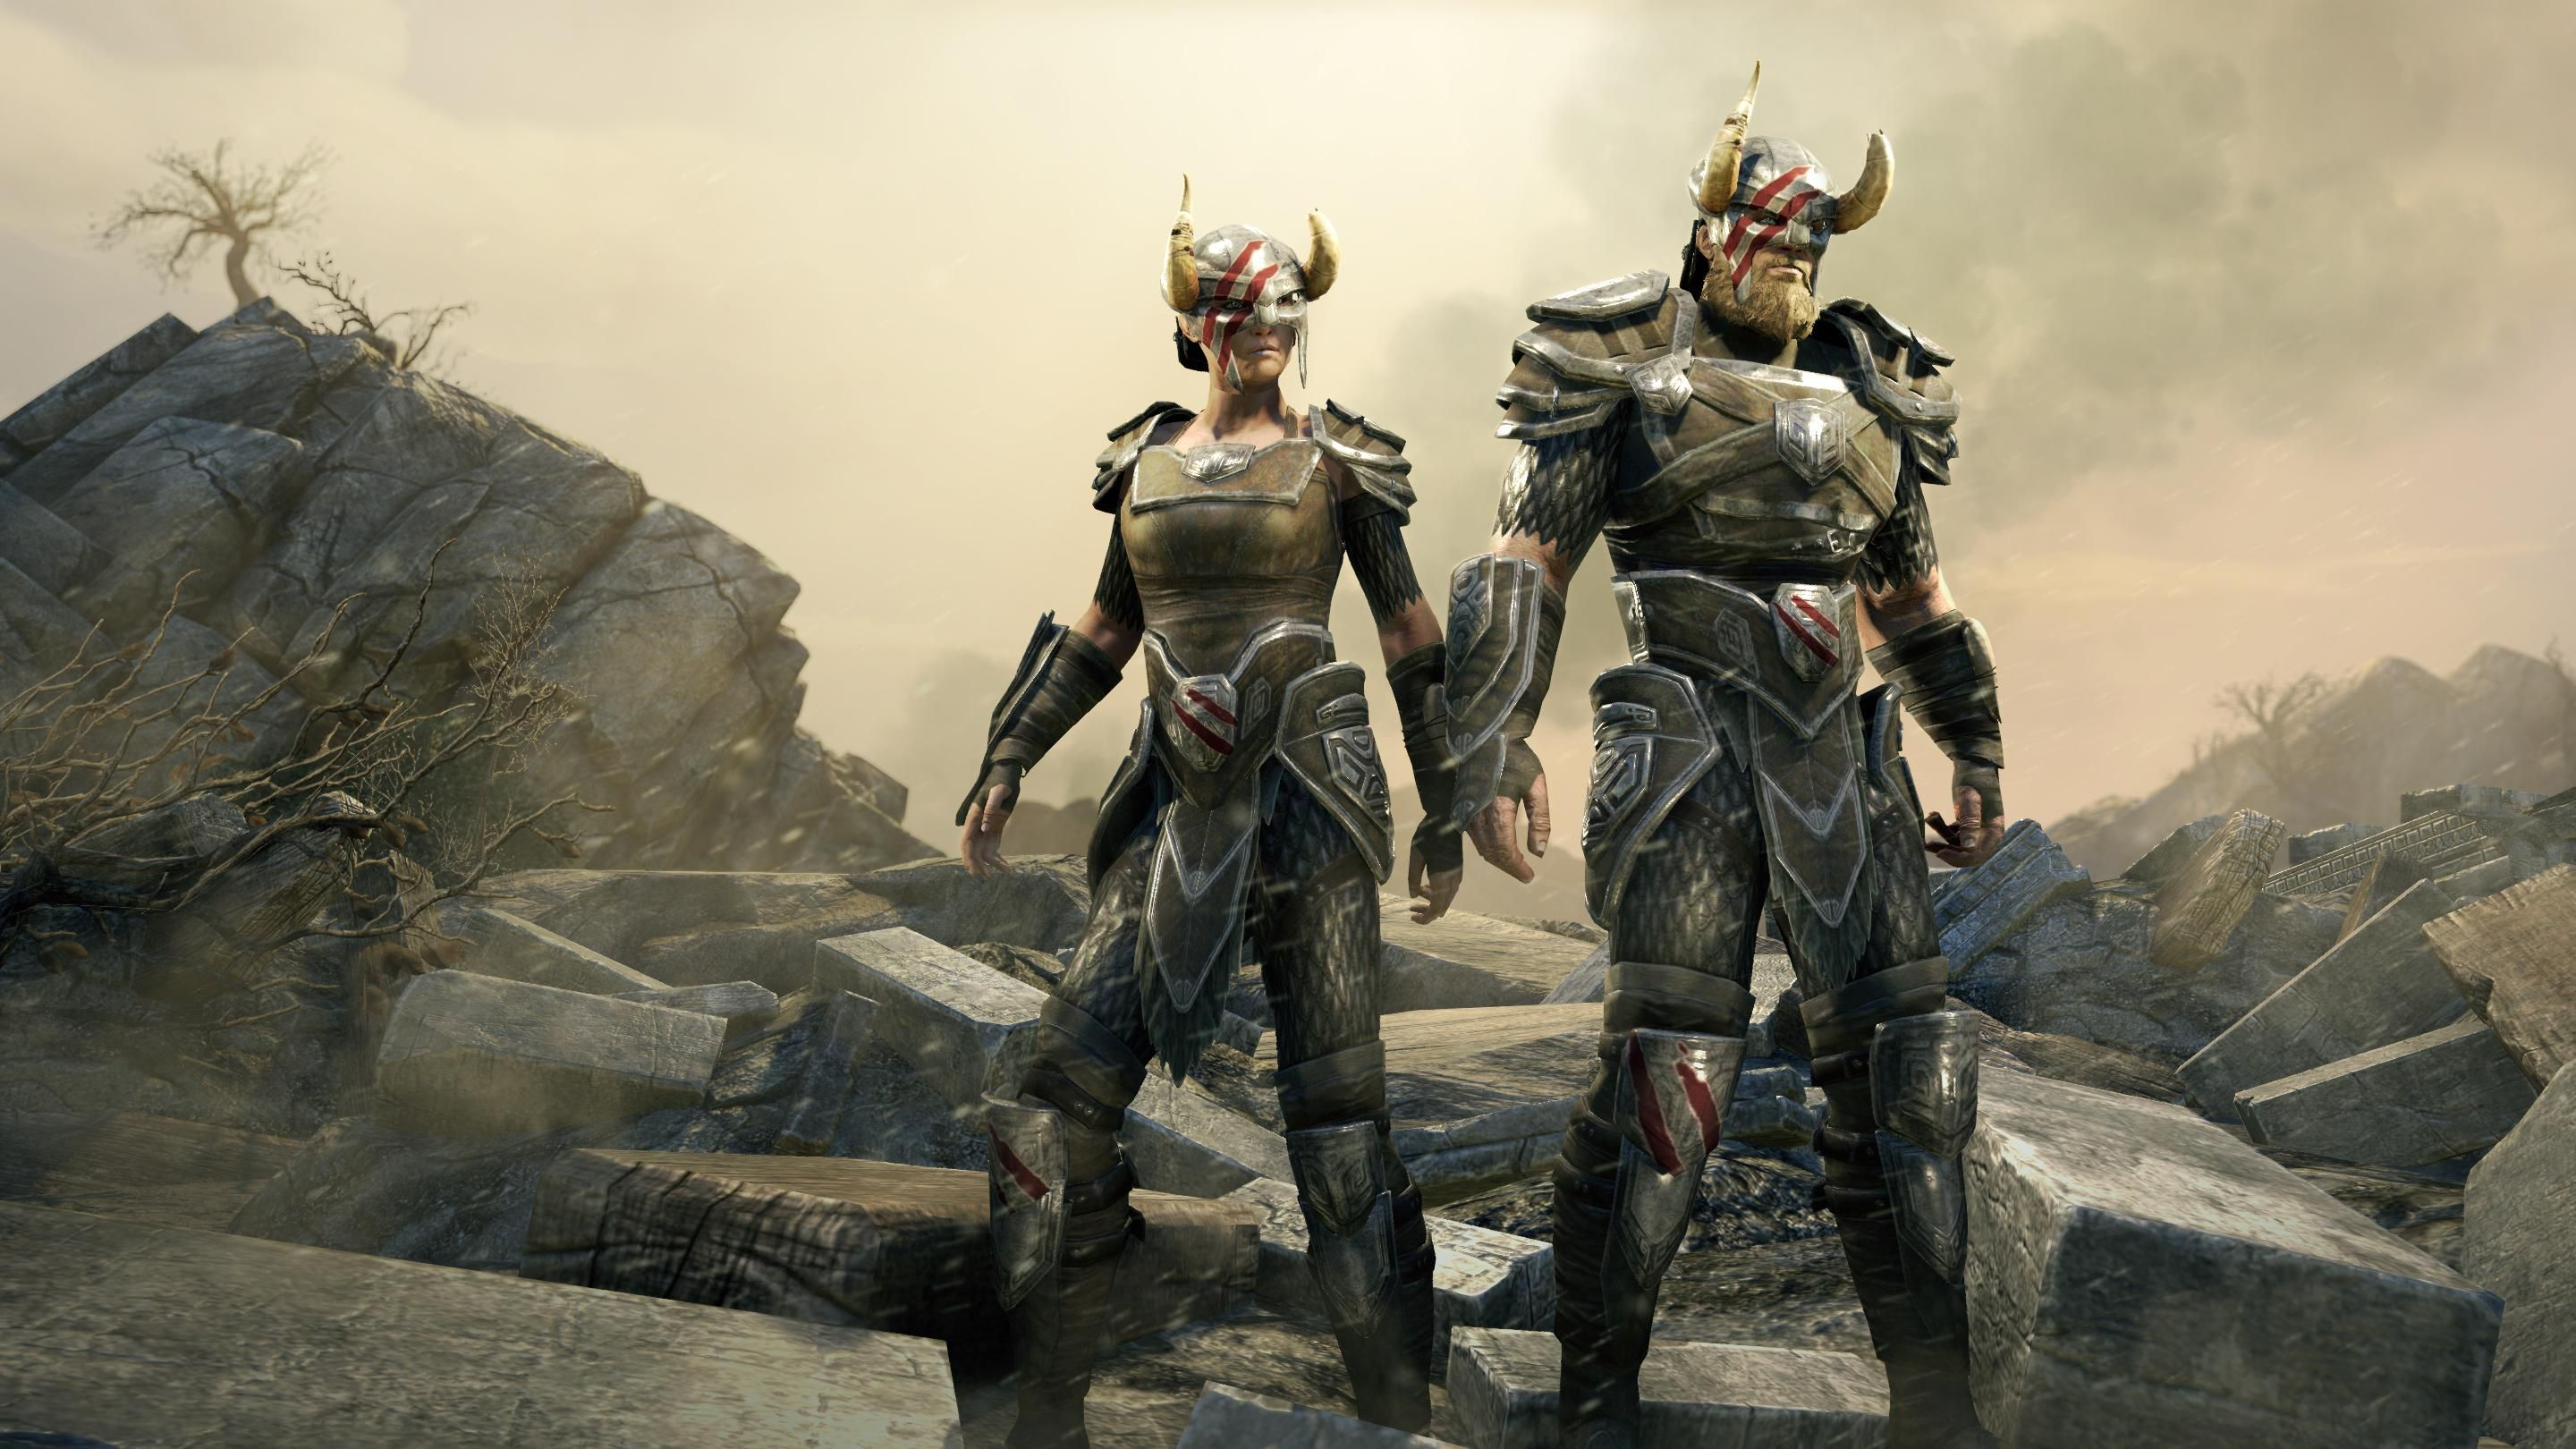 Nord Hero Armor Crown Store The Elder Scrolls Online Elder Scrolls Elder Scrolls Online Warriors Game What are the best armor ? nord hero armor crown store the